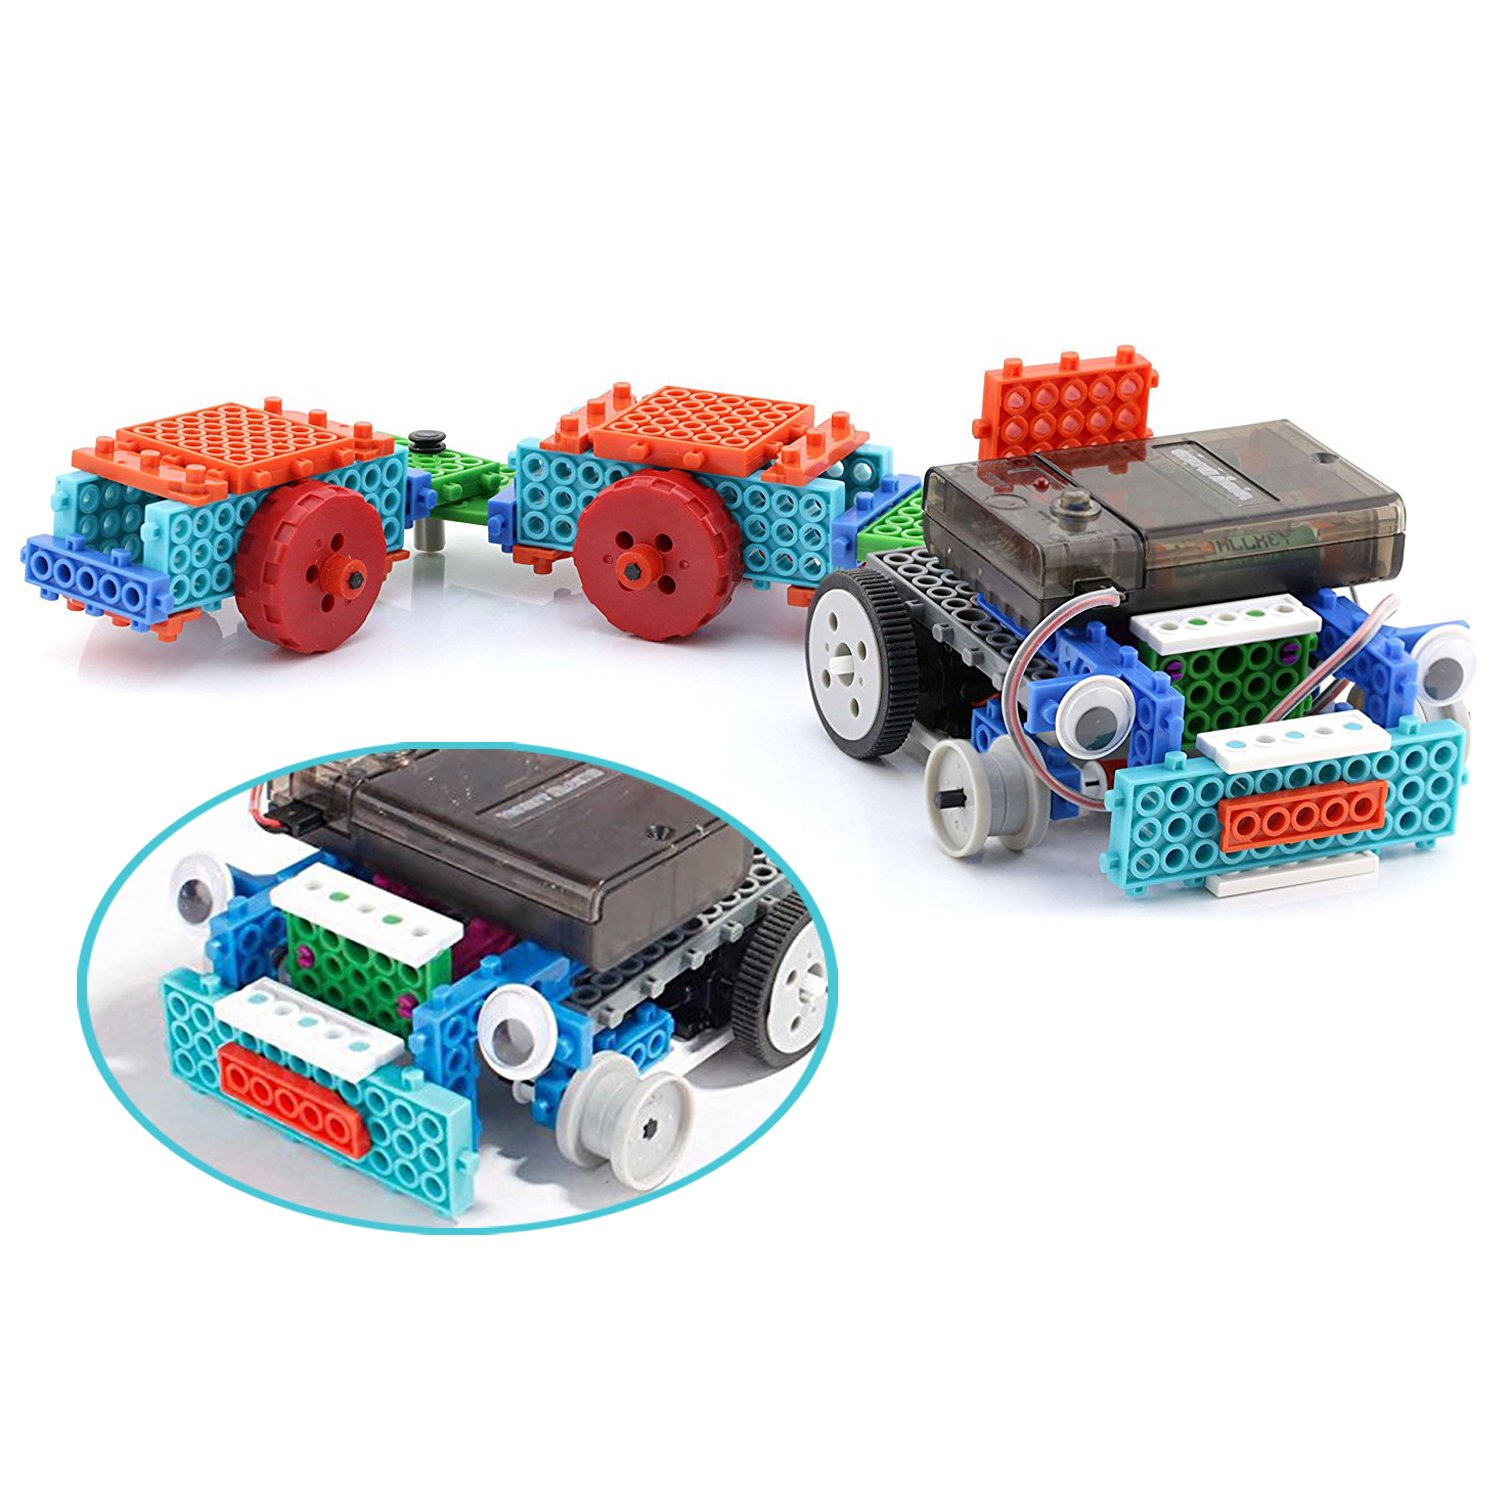 Boy Toys STEM Robot Kit Building Toys Remote Control Building Kits for Teen/Girl/Boy Gifts Building Blocks Construction Set Build Your Own RC Machines 123 Pieces by PACKGOUT (Image #3)